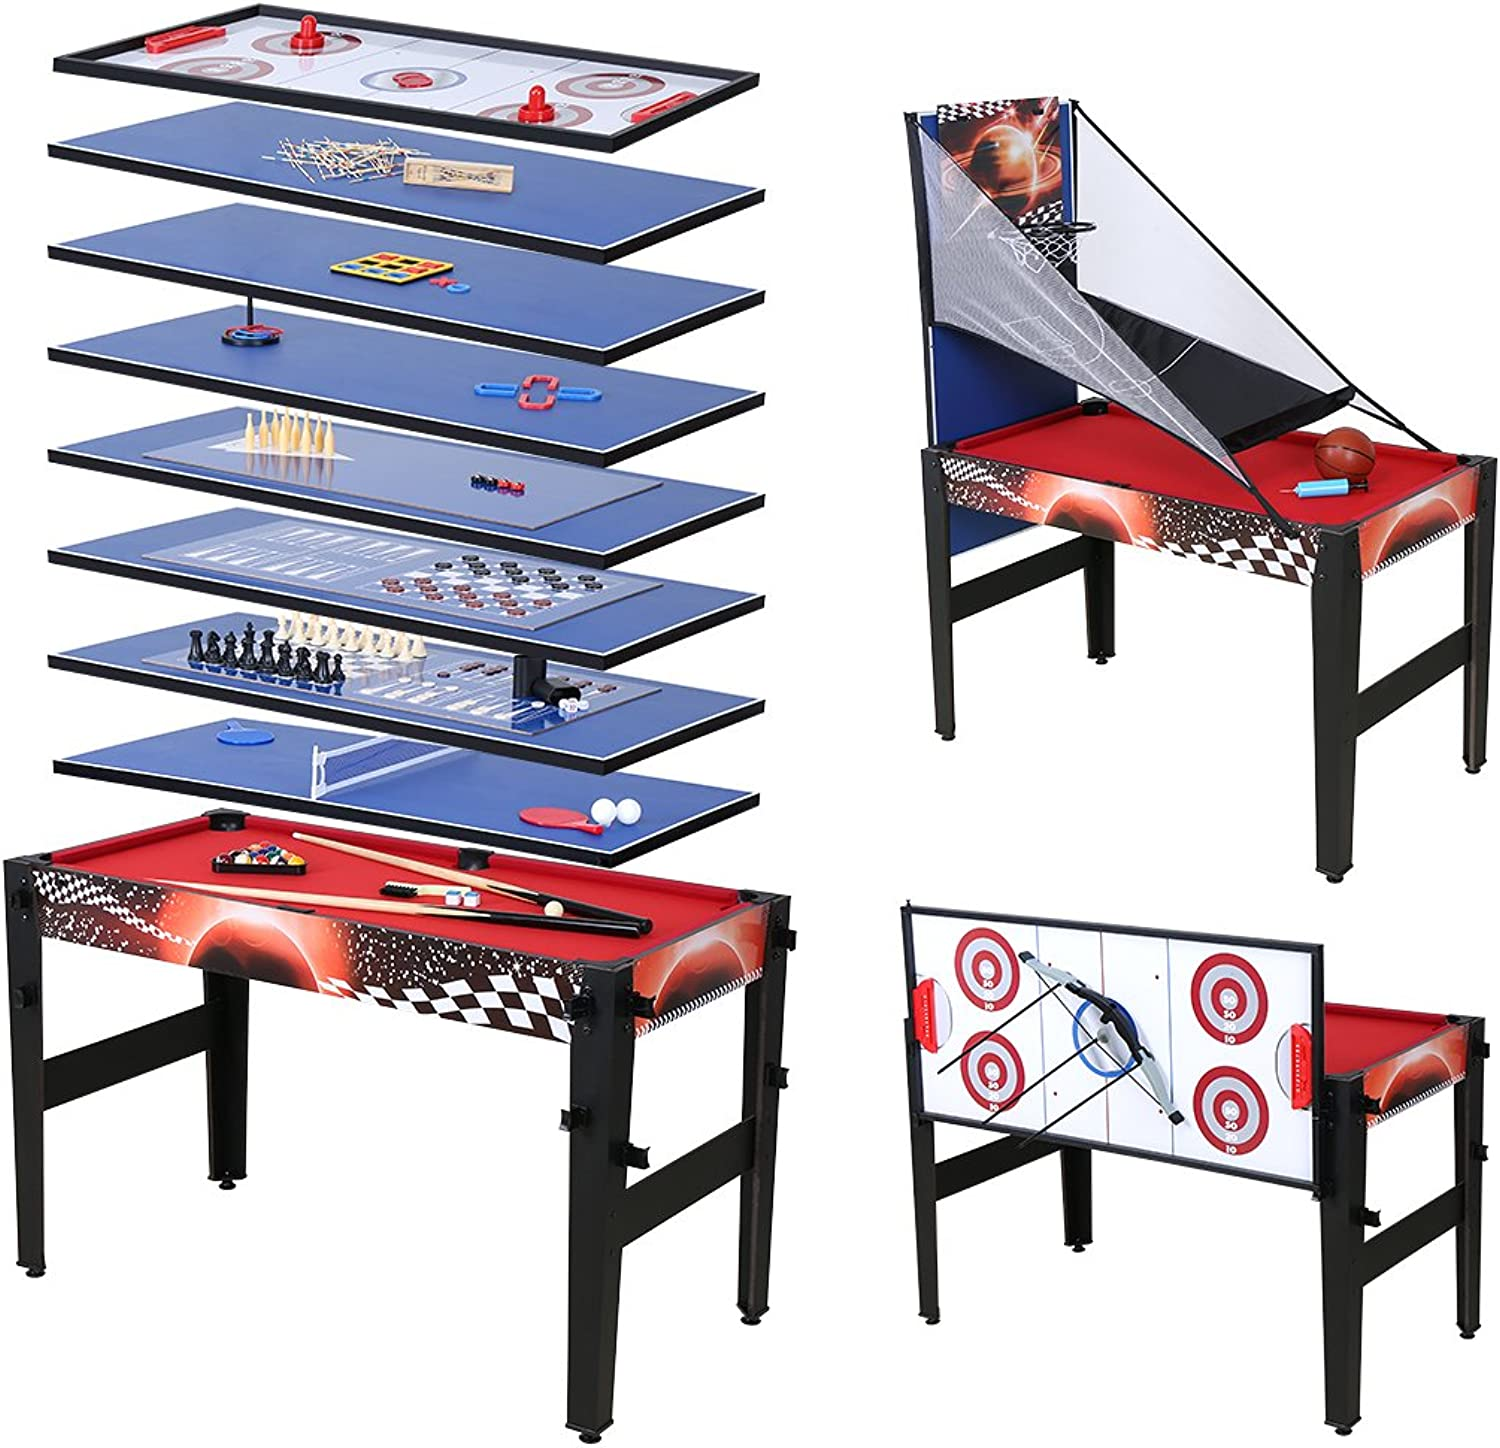 14 in 1 Multi Game Table Basketball Pool Hockey Ping Pong Table Bowling Chess